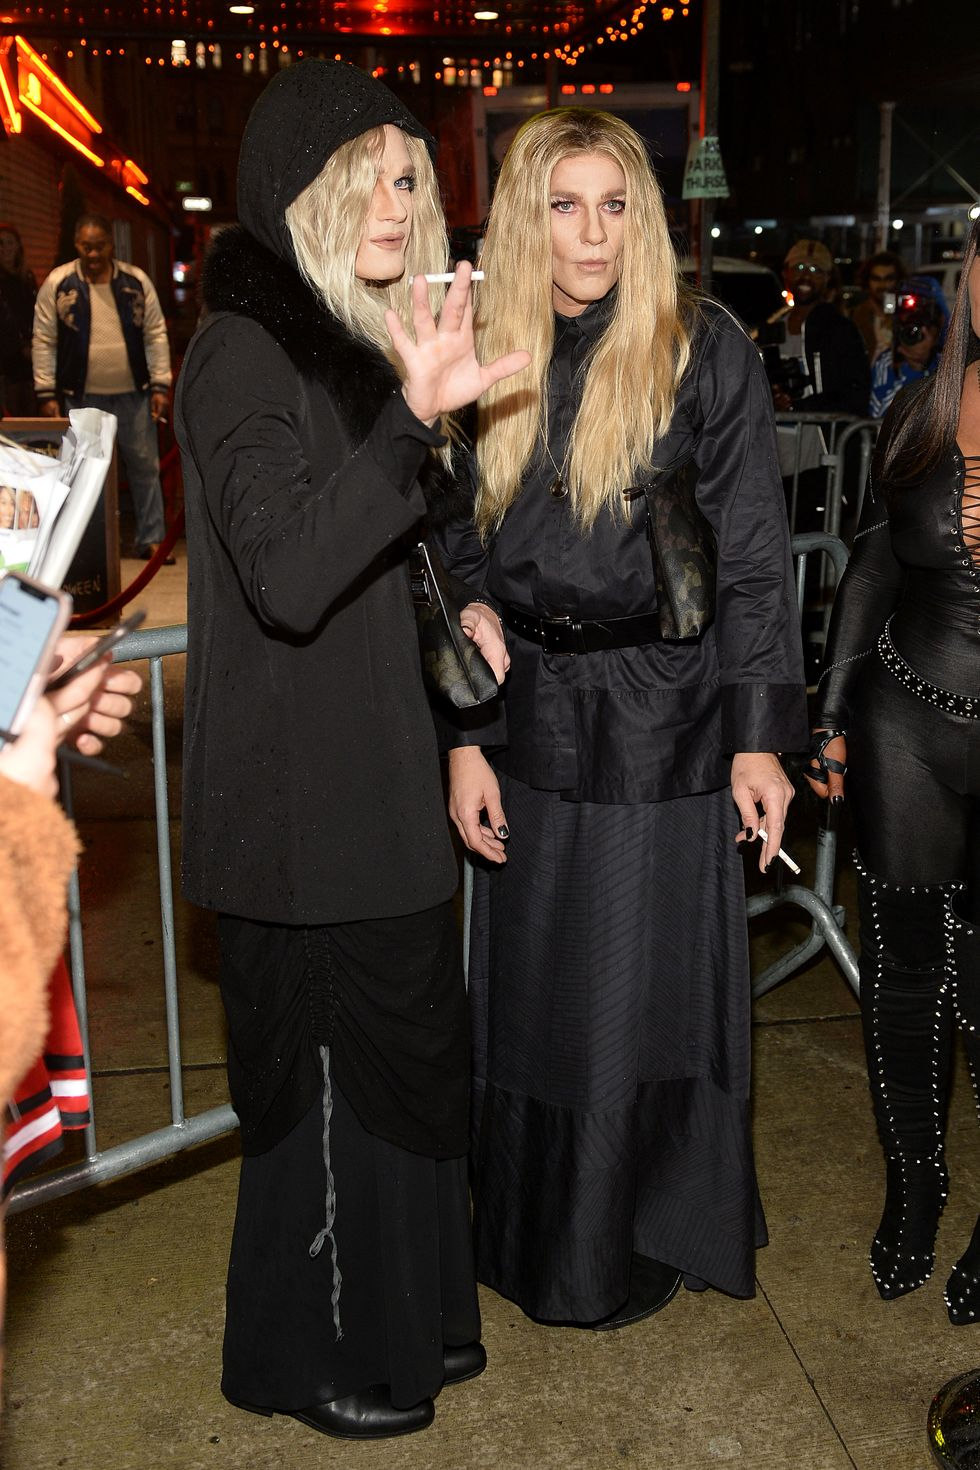 Neil Patrick Harris and David Burtka dressed up as the Olsen twins, with all-black outfits, long blond wigs, pouty makeup and cigarettes in hand.